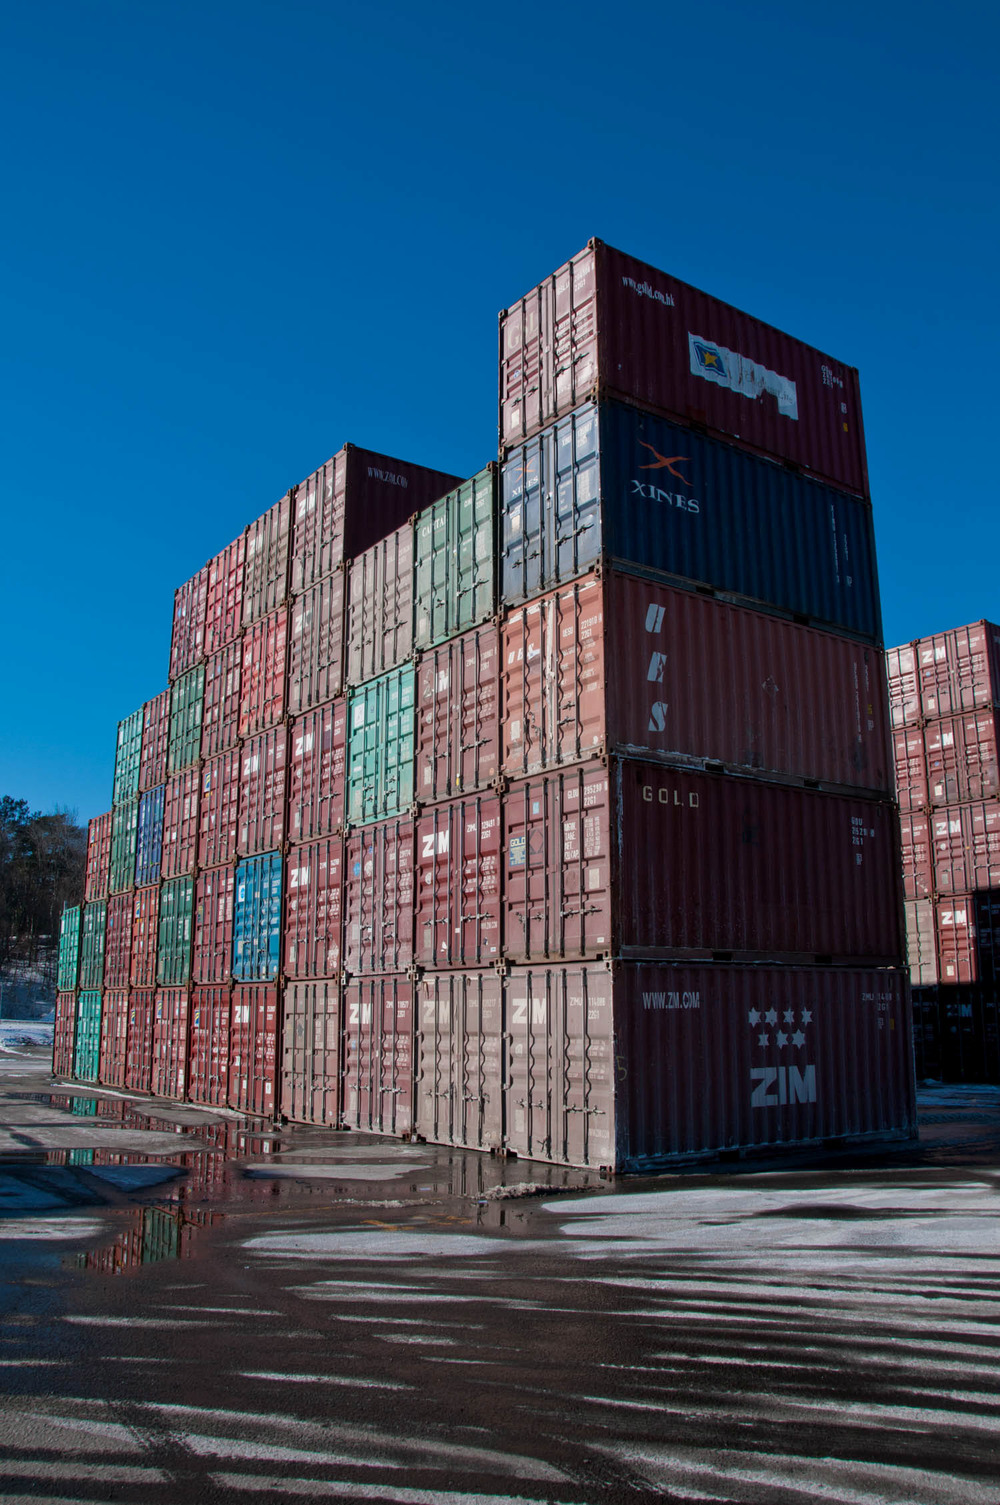 amfraser-Bloomberg News-Port of Halifax-Halterm Container Terminal-Halifax NS-7281-photo by Aaron McKenzie Fraser-www.amfraser.com-.jpg